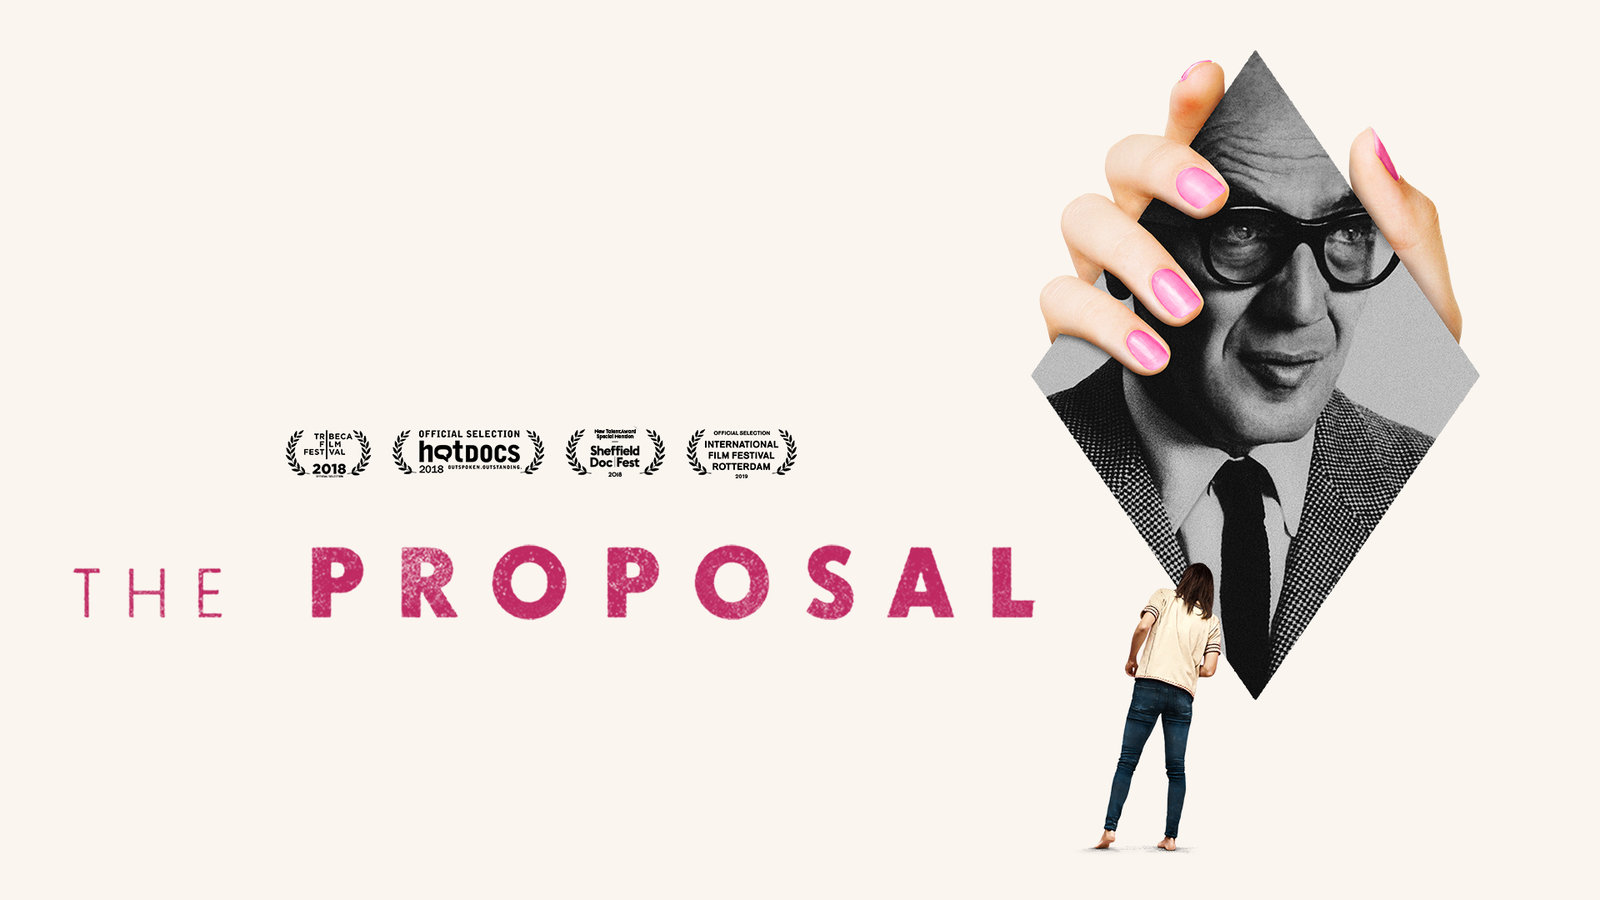 The Proposal - A Conceptual Art Project Based on the Work of Architect Luis Barragán